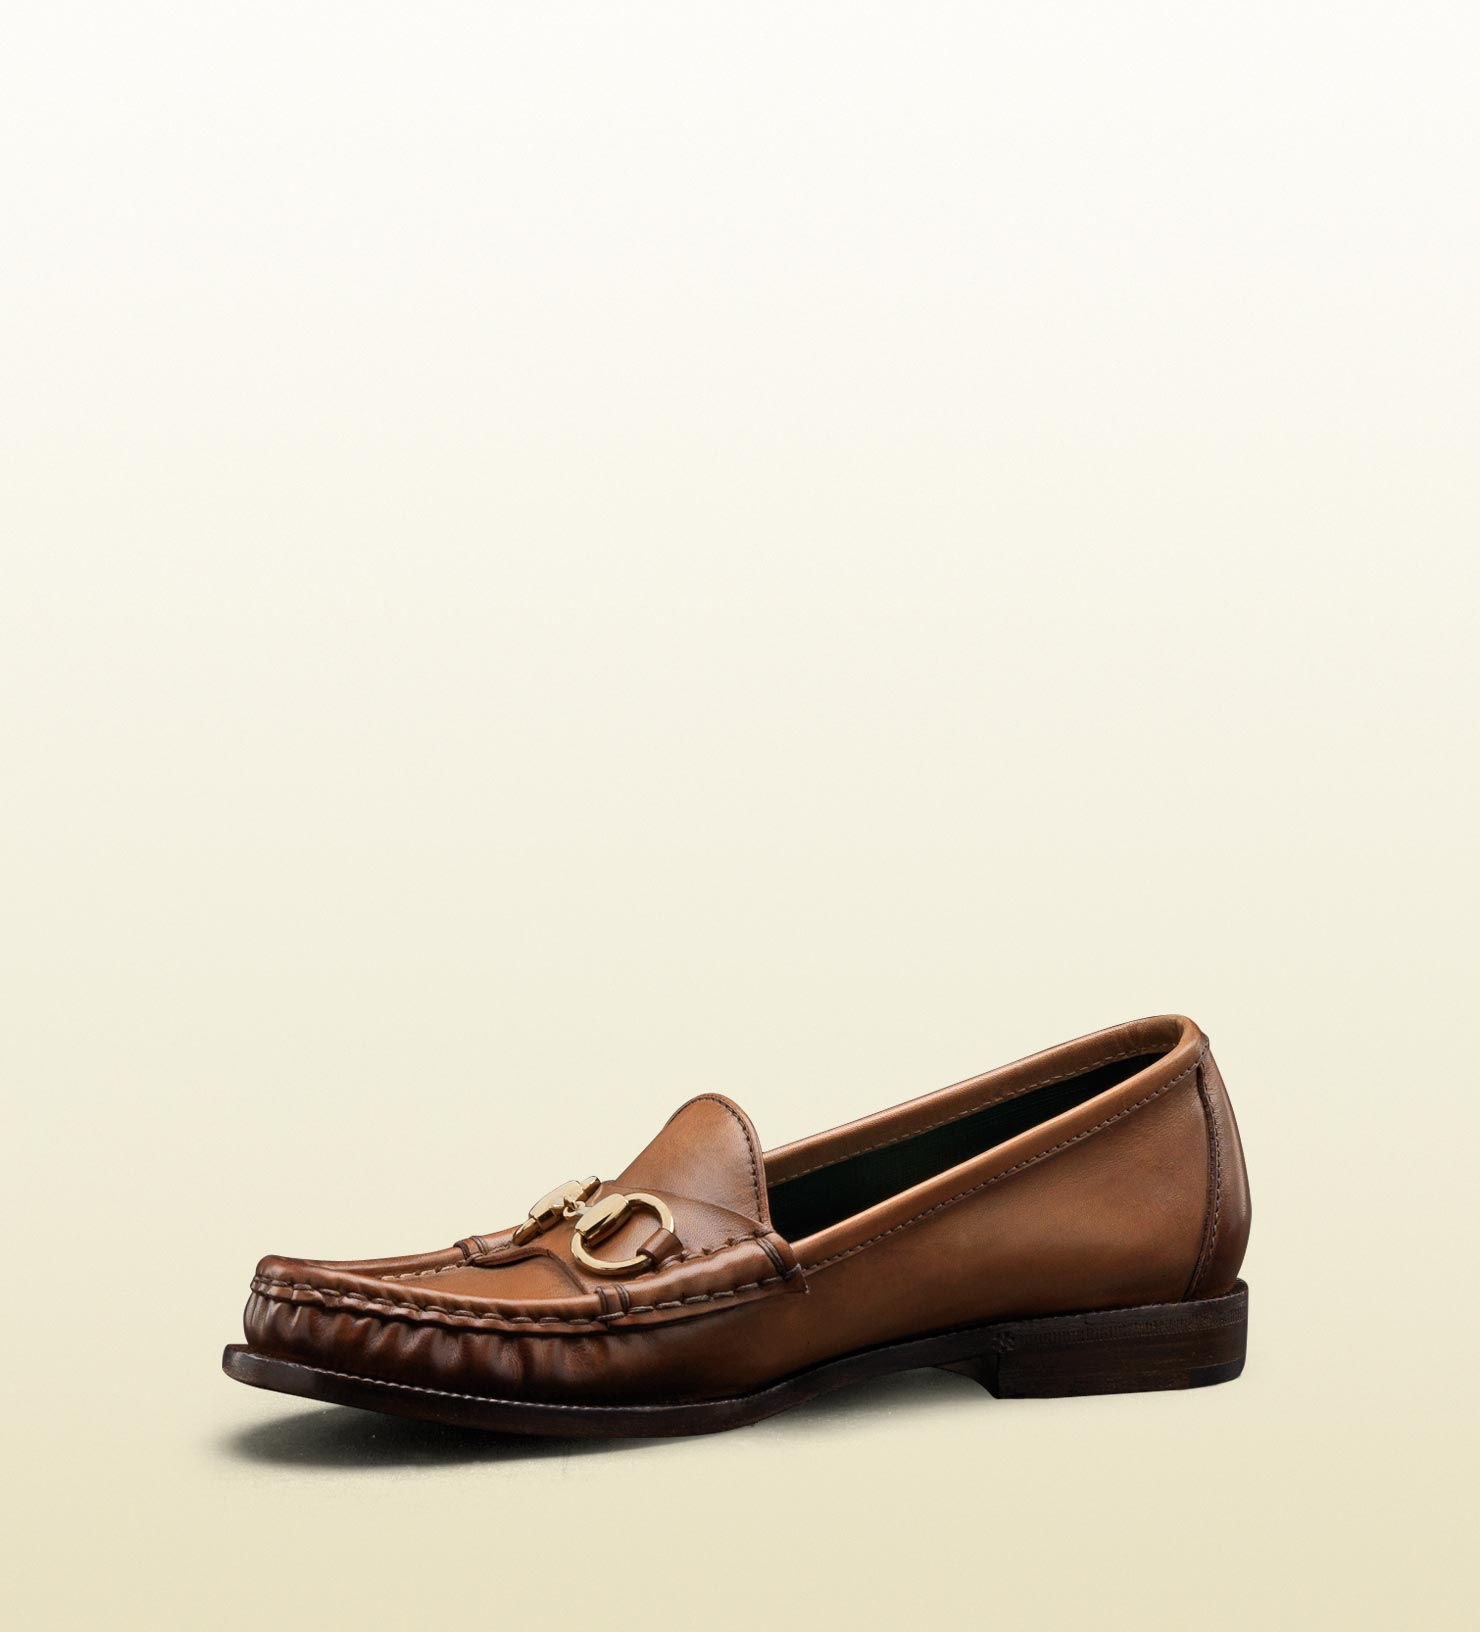 dc58c22508d Lyst - Gucci Horsebit Moccasin in Winter Rose Hand Shaded Leather in ...